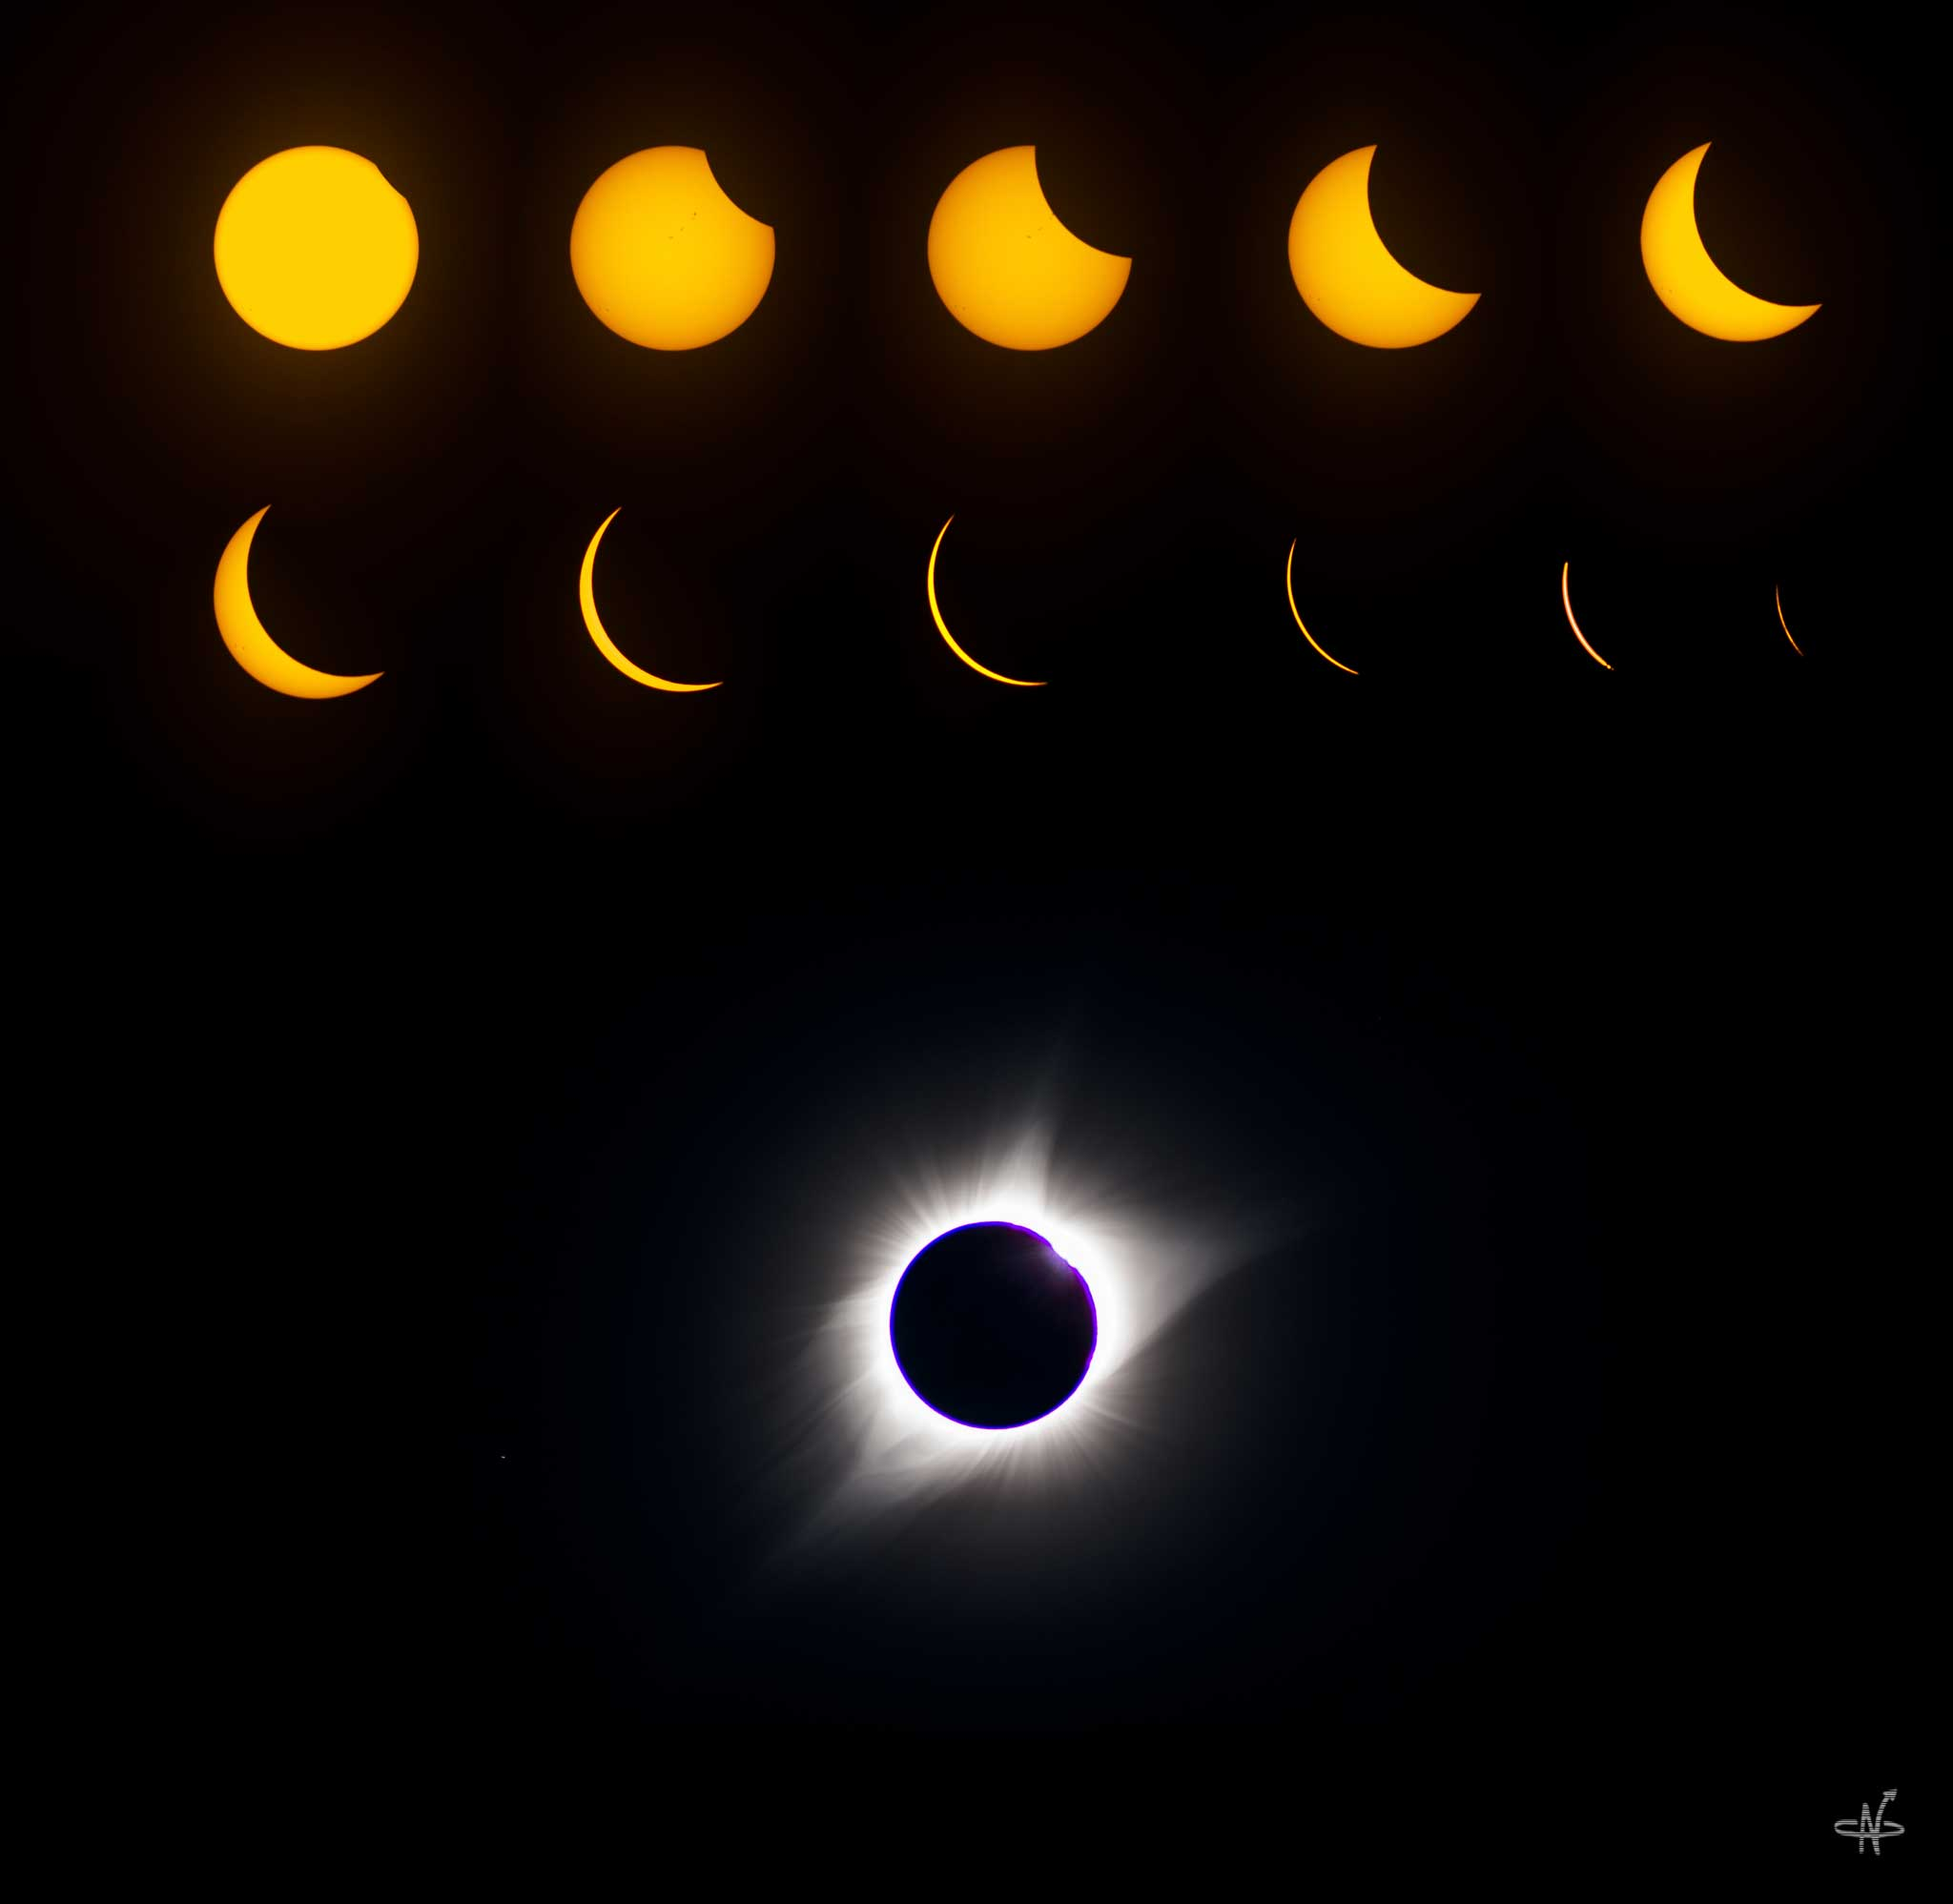 The progression of the eclipse as seen through Chad's scope.